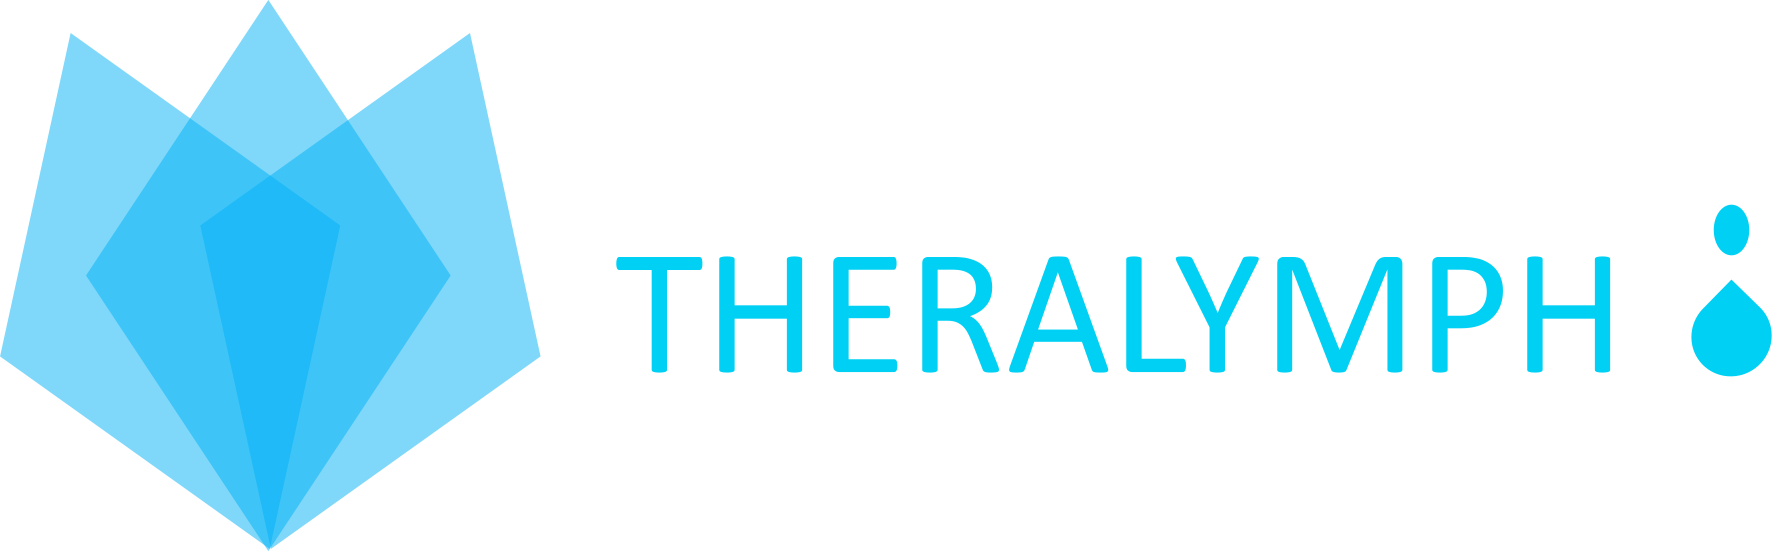 Theralymph Europe